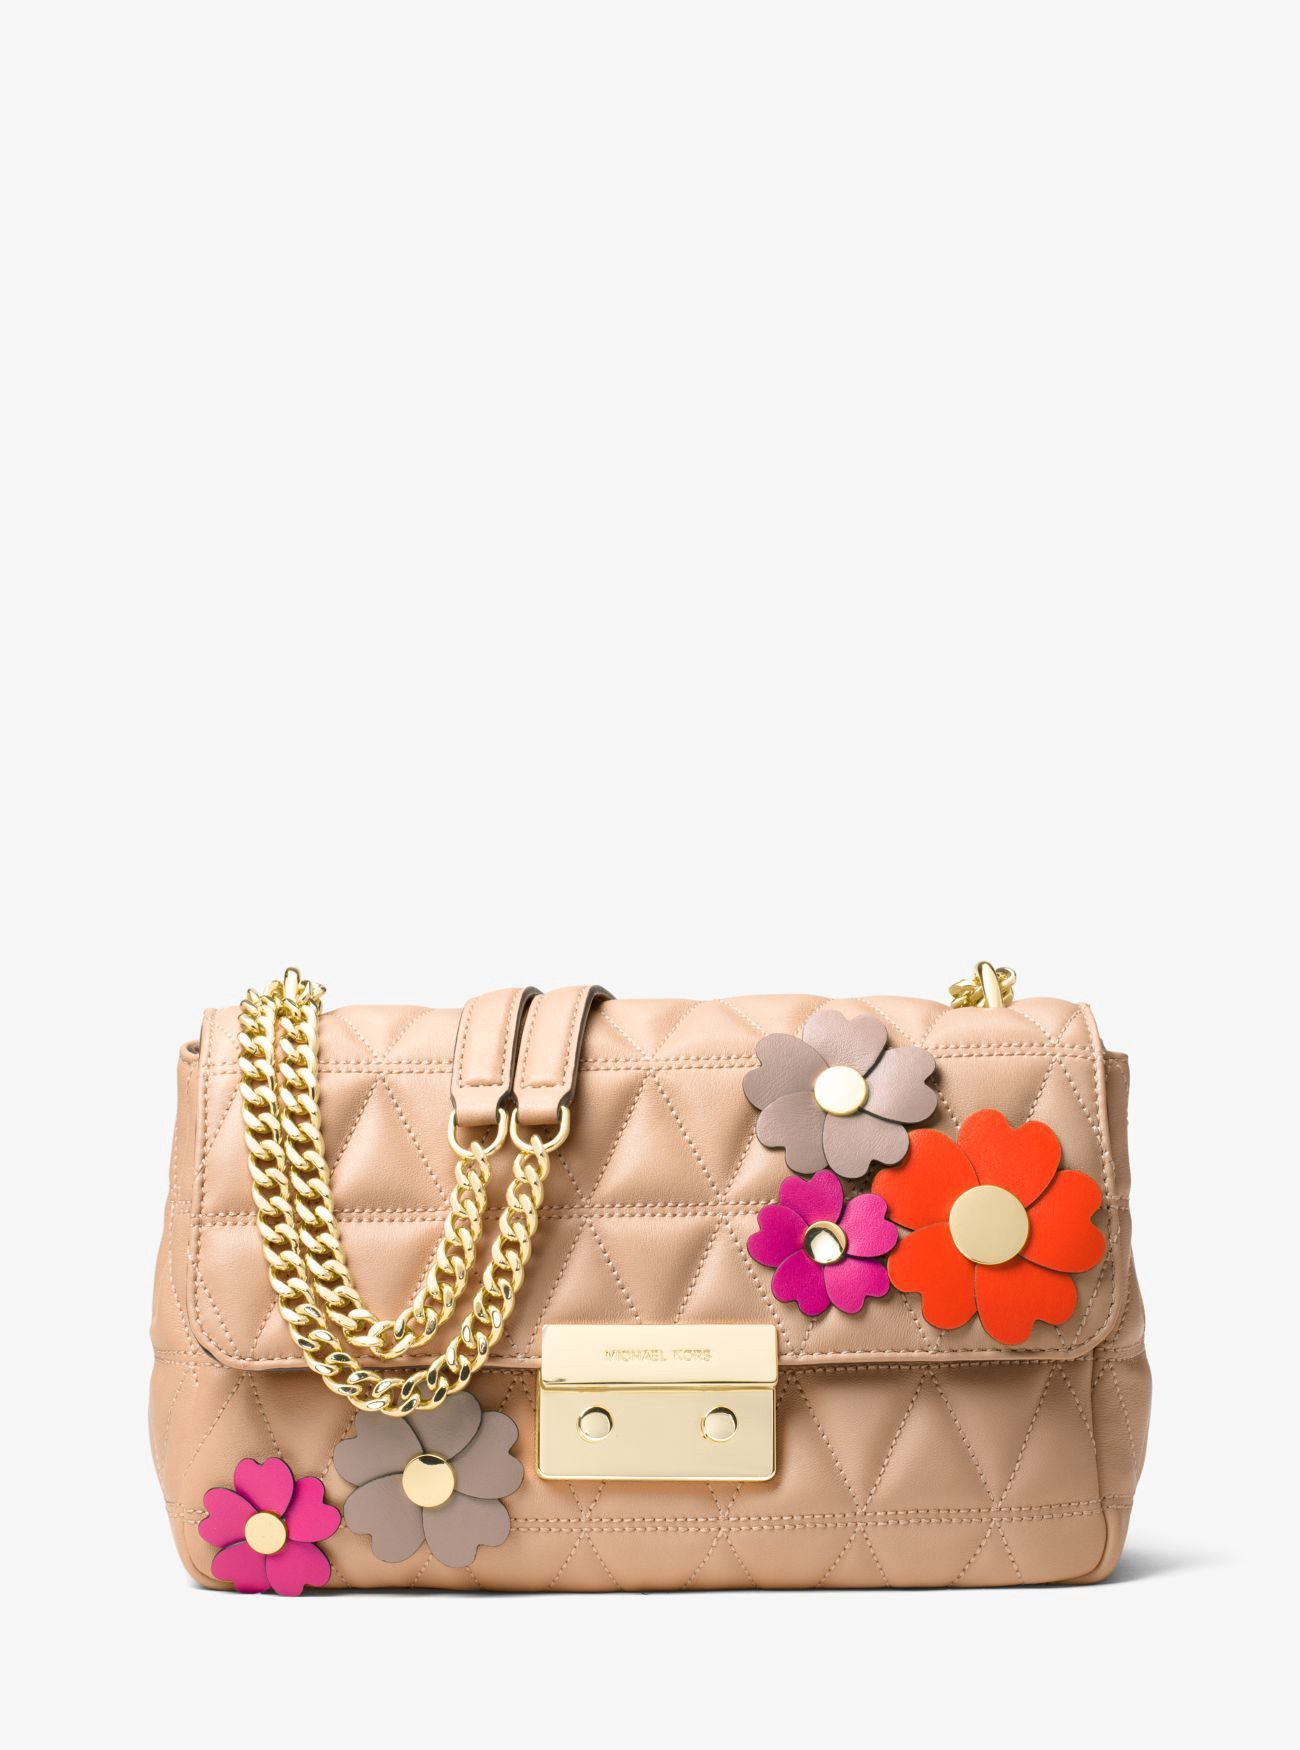 7eeffe375ca0 MICHAEL KORS Sloan Large Floral Appliqué Shoulder Bag. #michaelkors #bags #shoulder  bags #leather #polyester #lining #